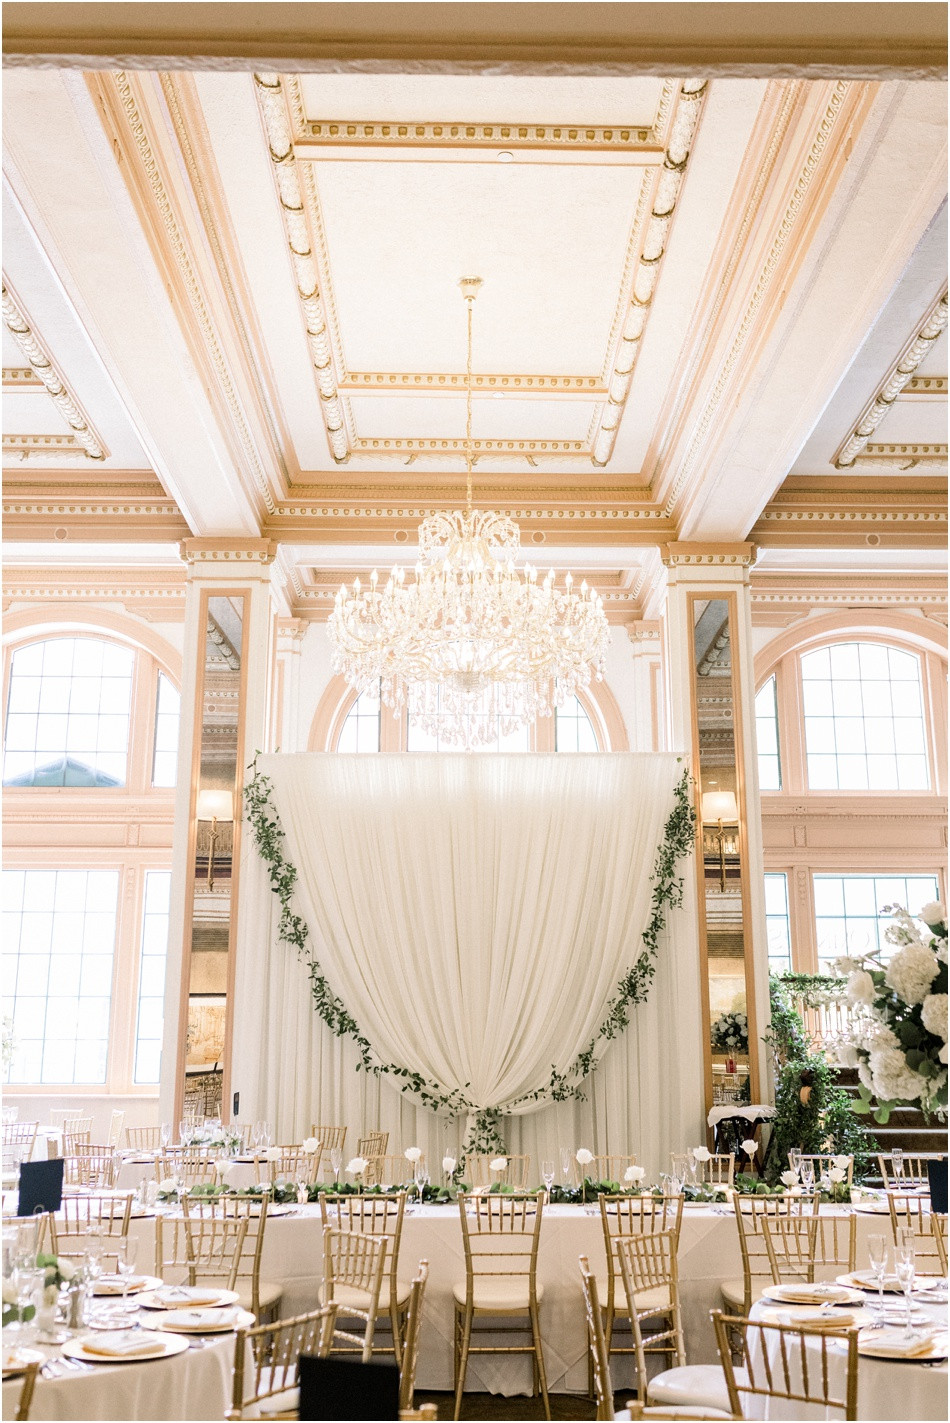 Omni-Severin-Indianapolis-Wedding-Reception-Ballroom